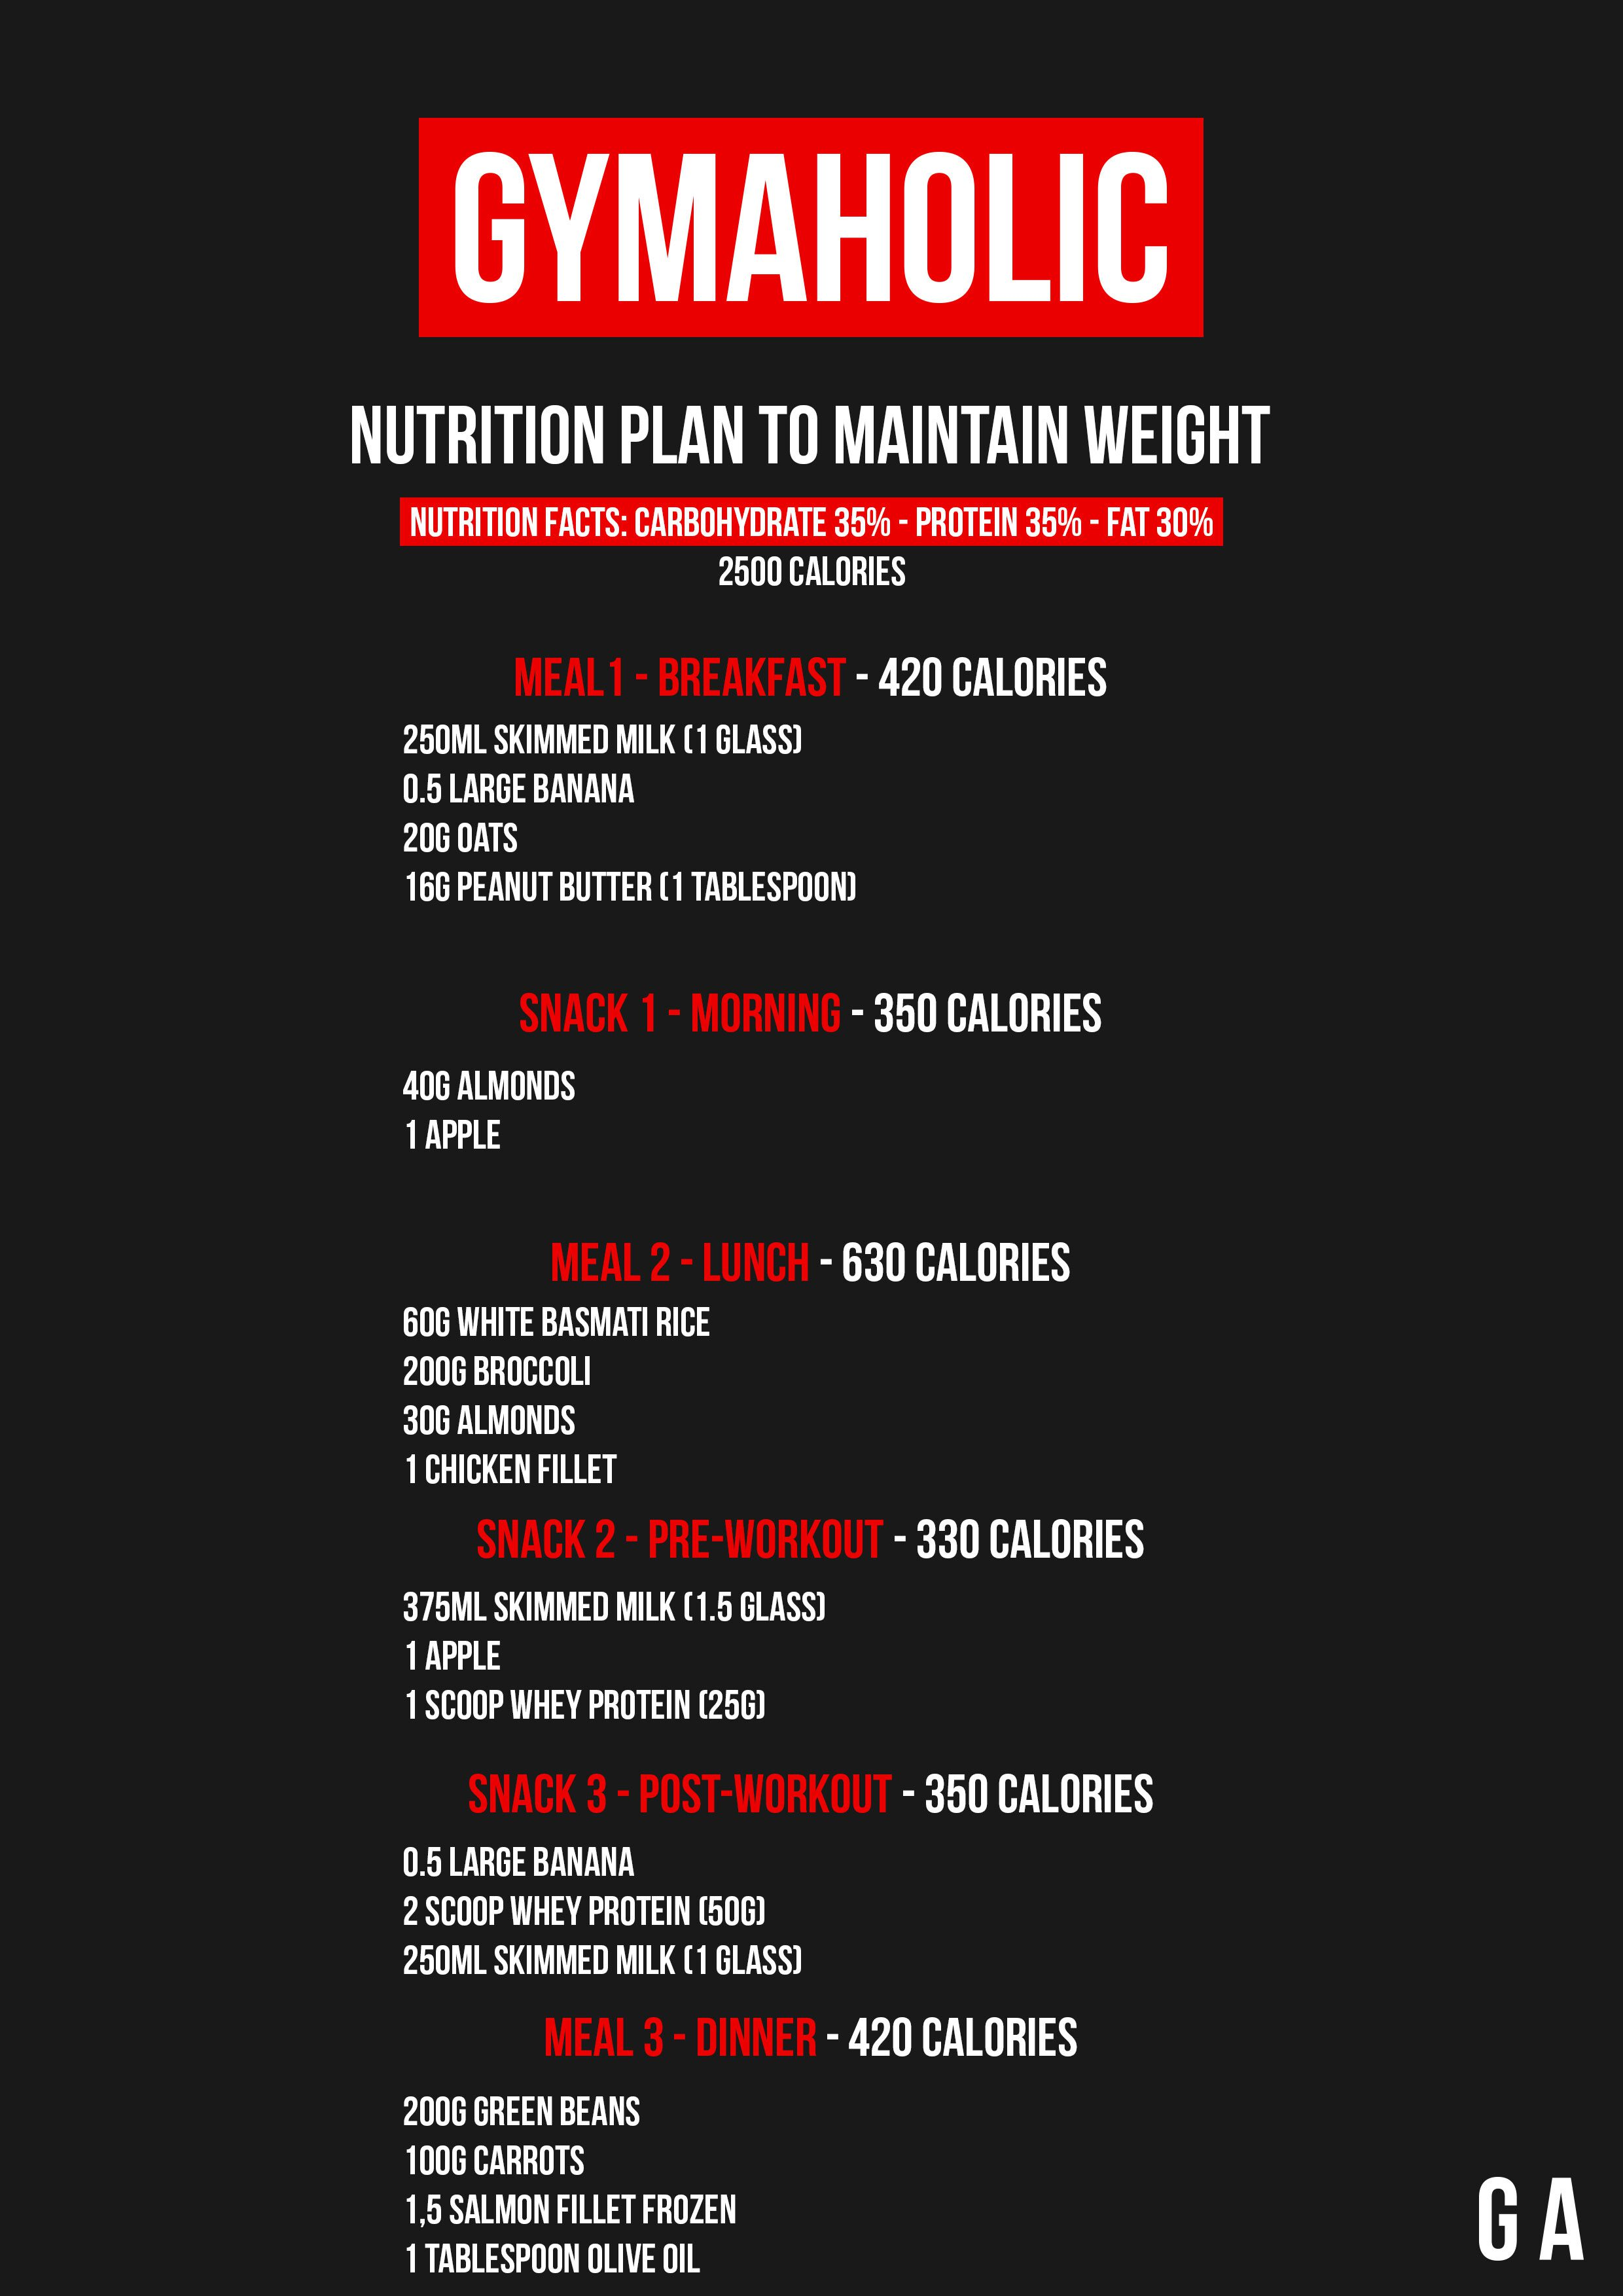 diet plan for getting lean and ripped